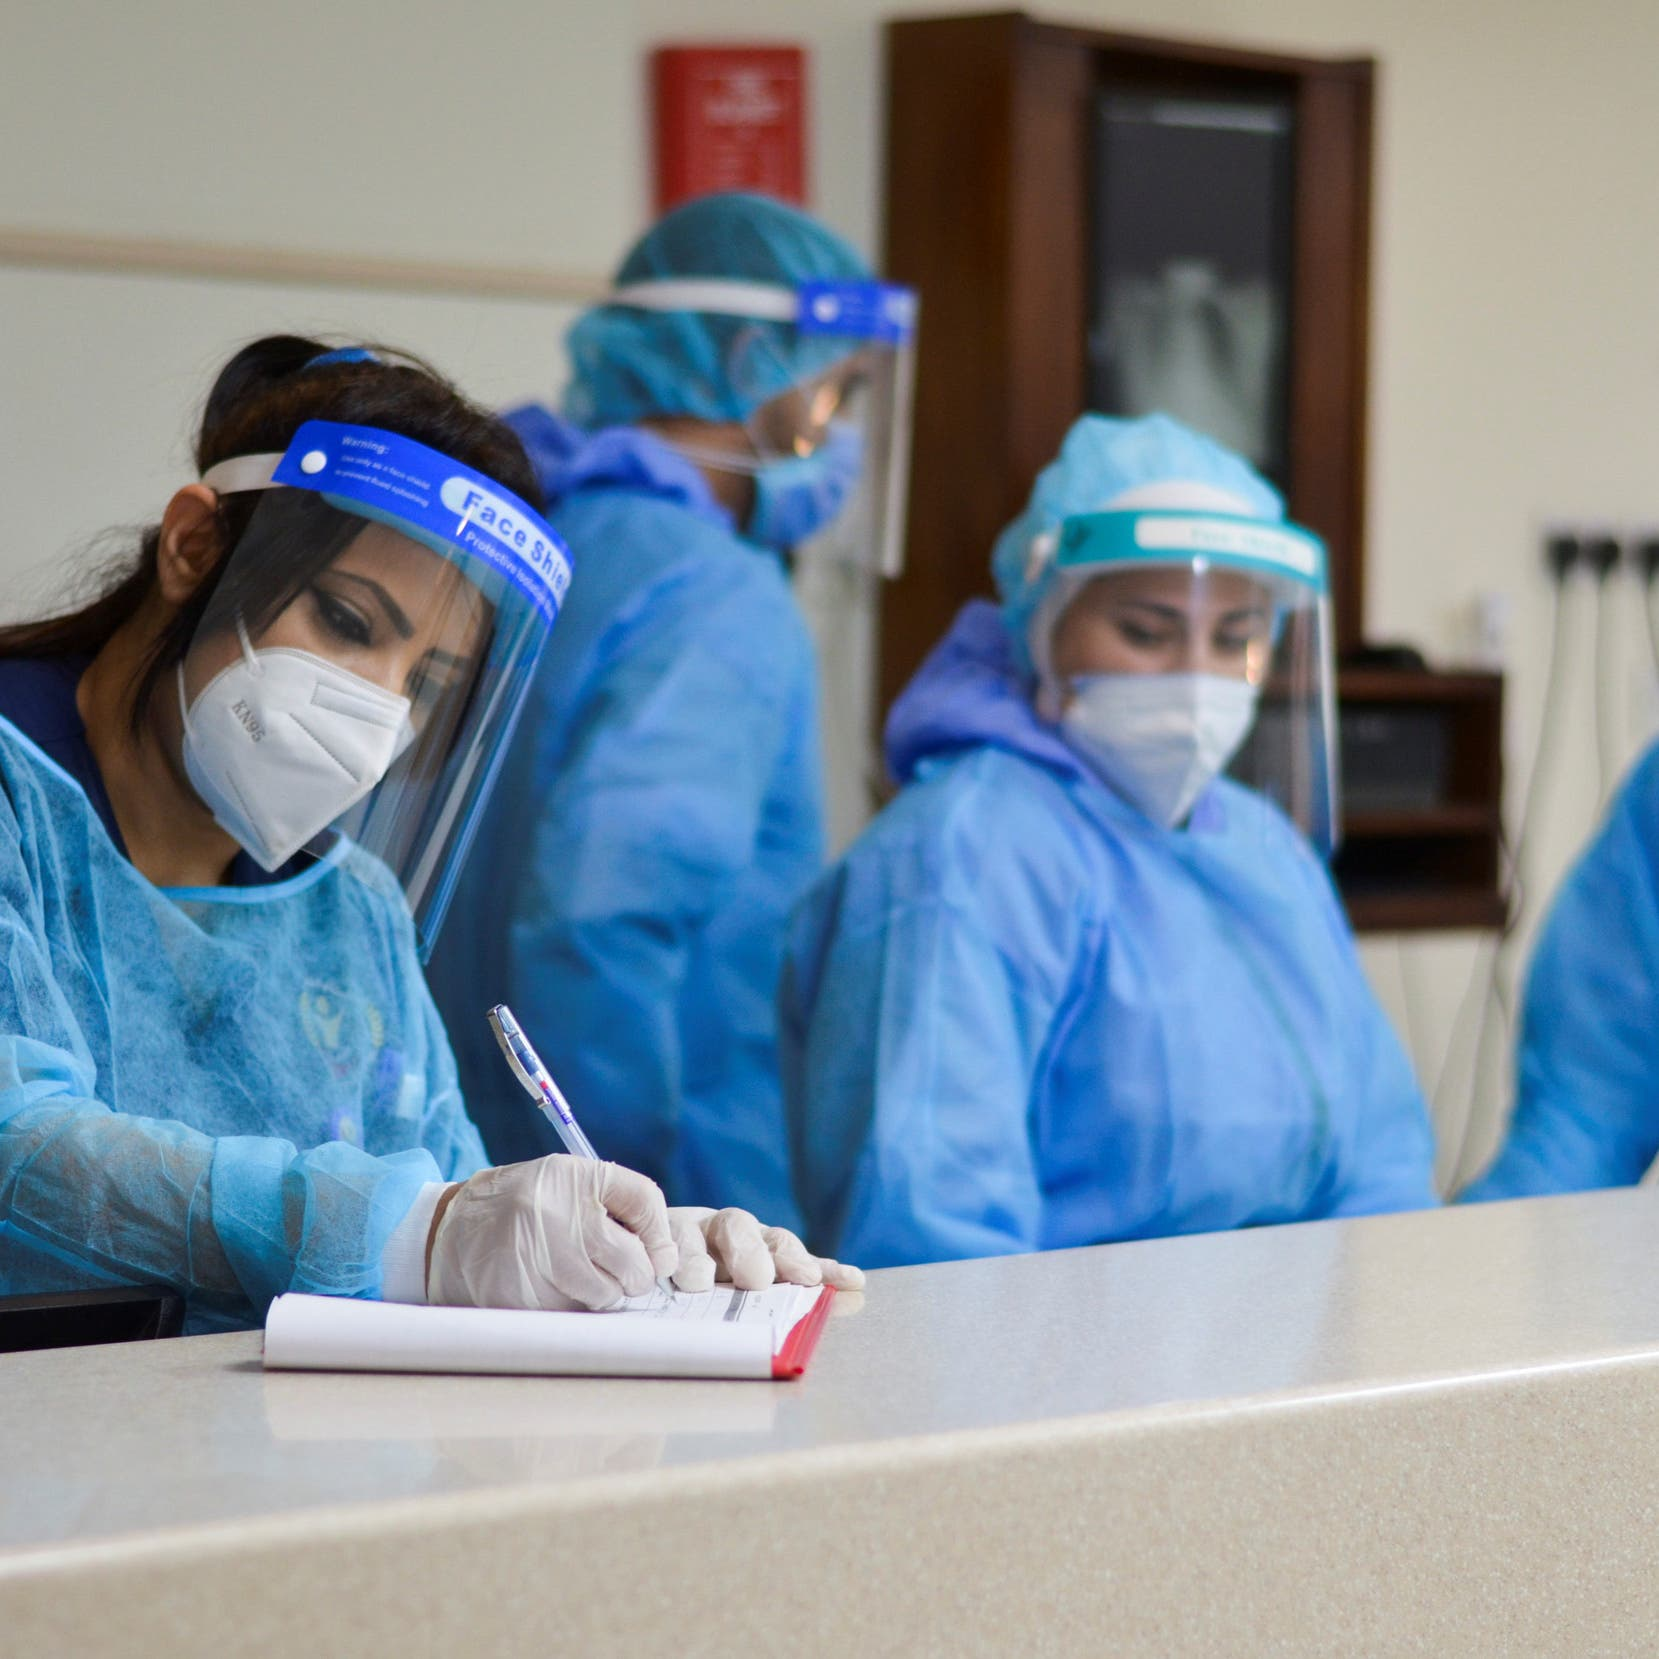 UAE sees 62 pct decrease in COVID-19 infections since January 2021